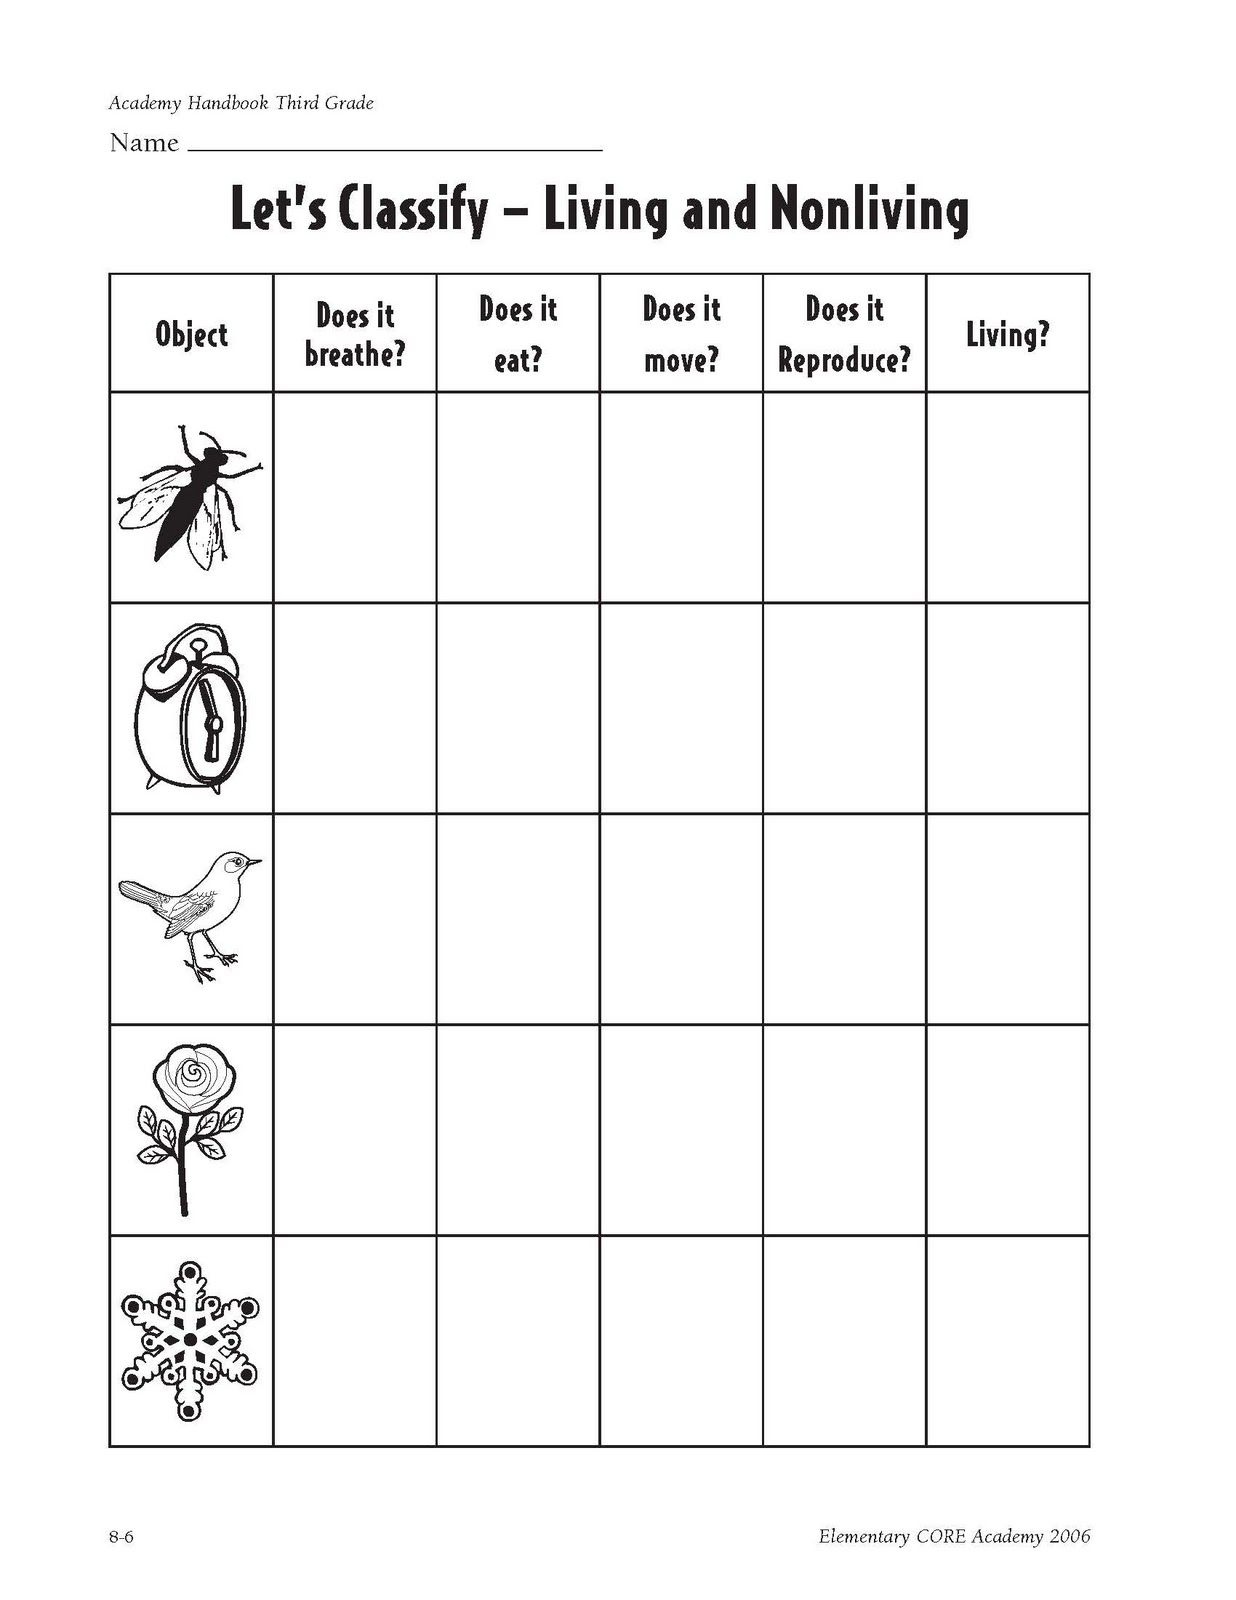 Worksheets Living And Nonliving Things Worksheets characteristics of living things made cells obtain and use energy grow develop reproduce respond to their environment a